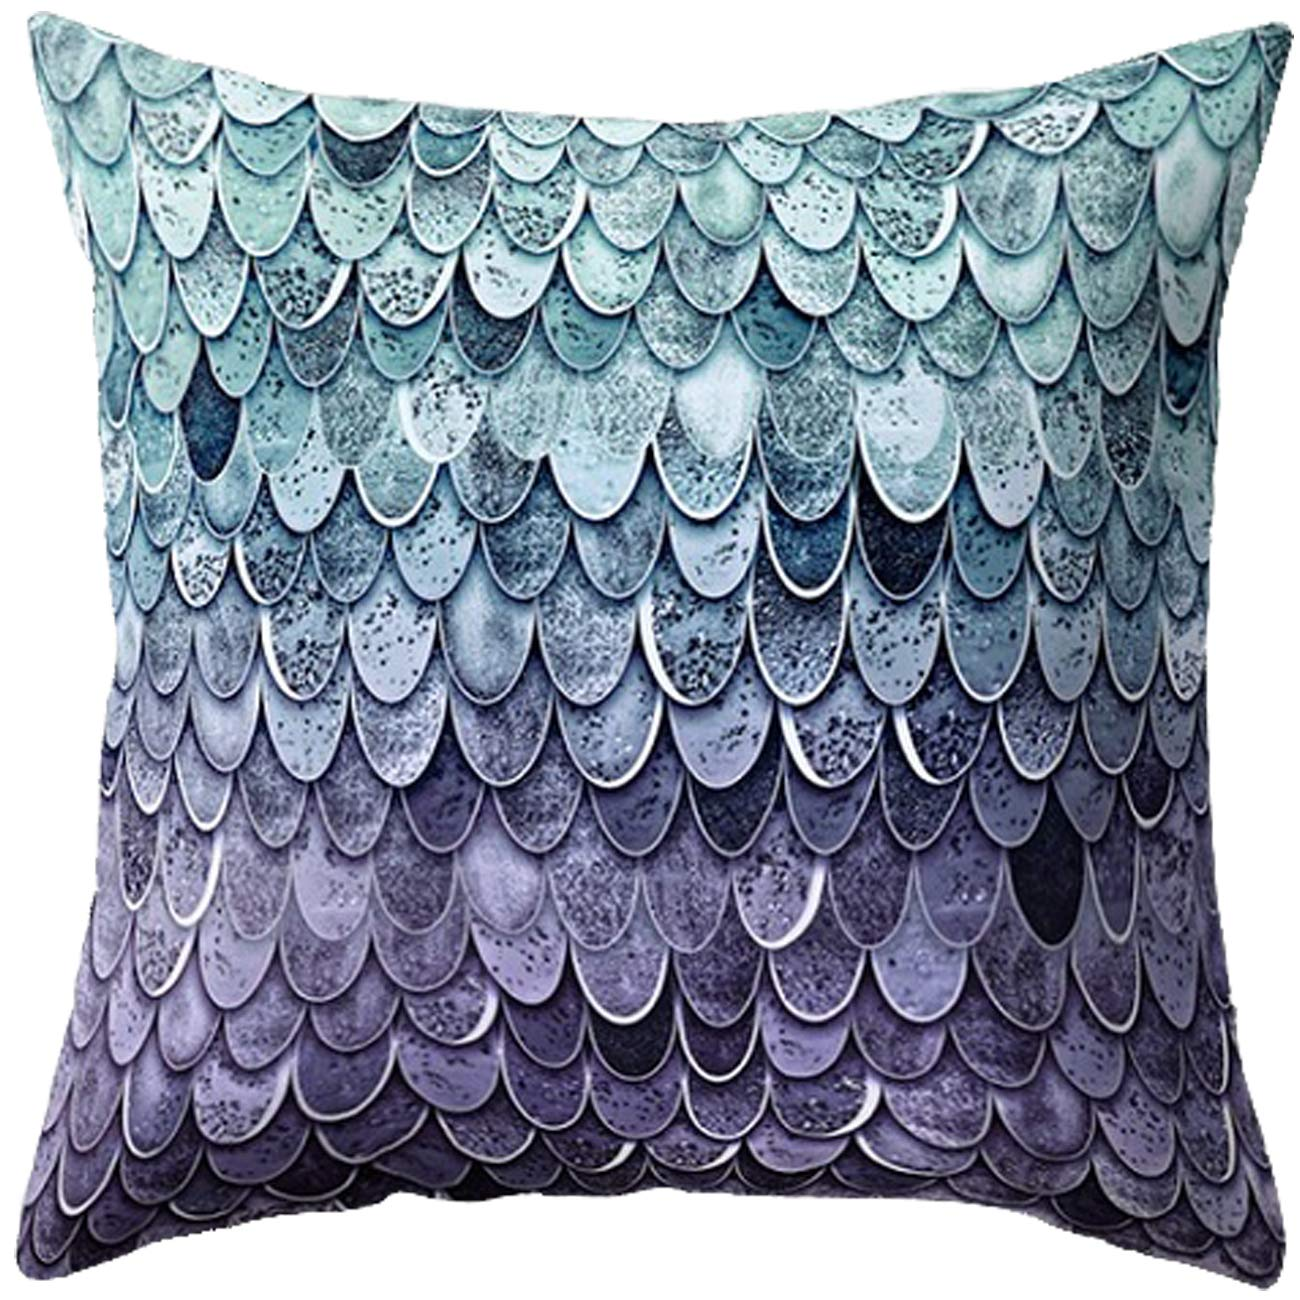 Floral Printed Teal-Purple Treely Mermaid Pillow Cases Decorative Mermaid Scale Throw Pillow Covers Set of 2 Cushion Covers 18 x 18 for Beach Couch Sofa